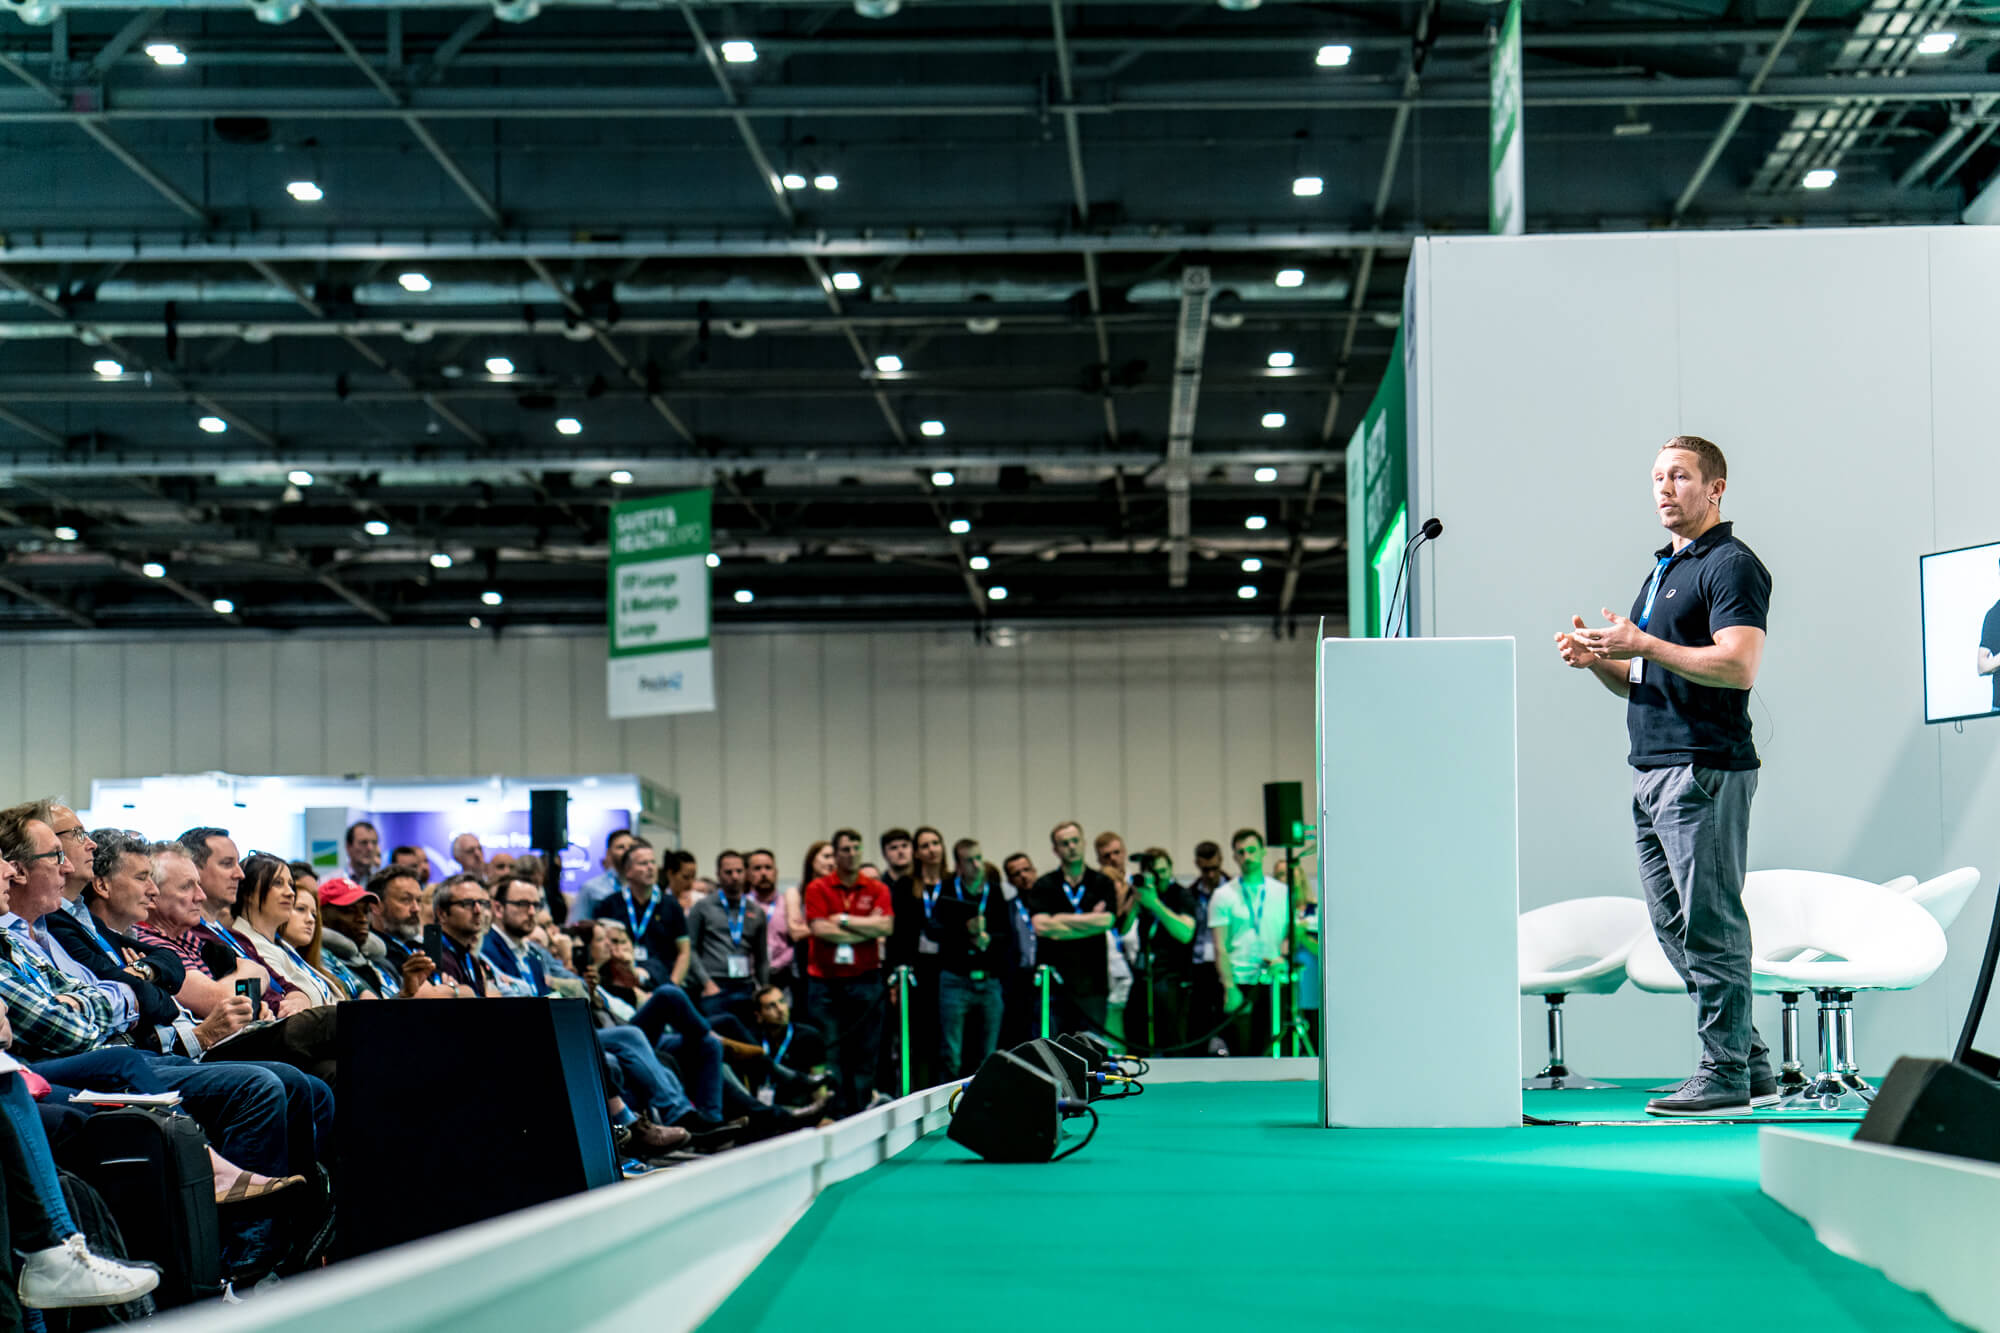 Jonny Wilkinson giving a seminar at Safety & Health Expo 2019